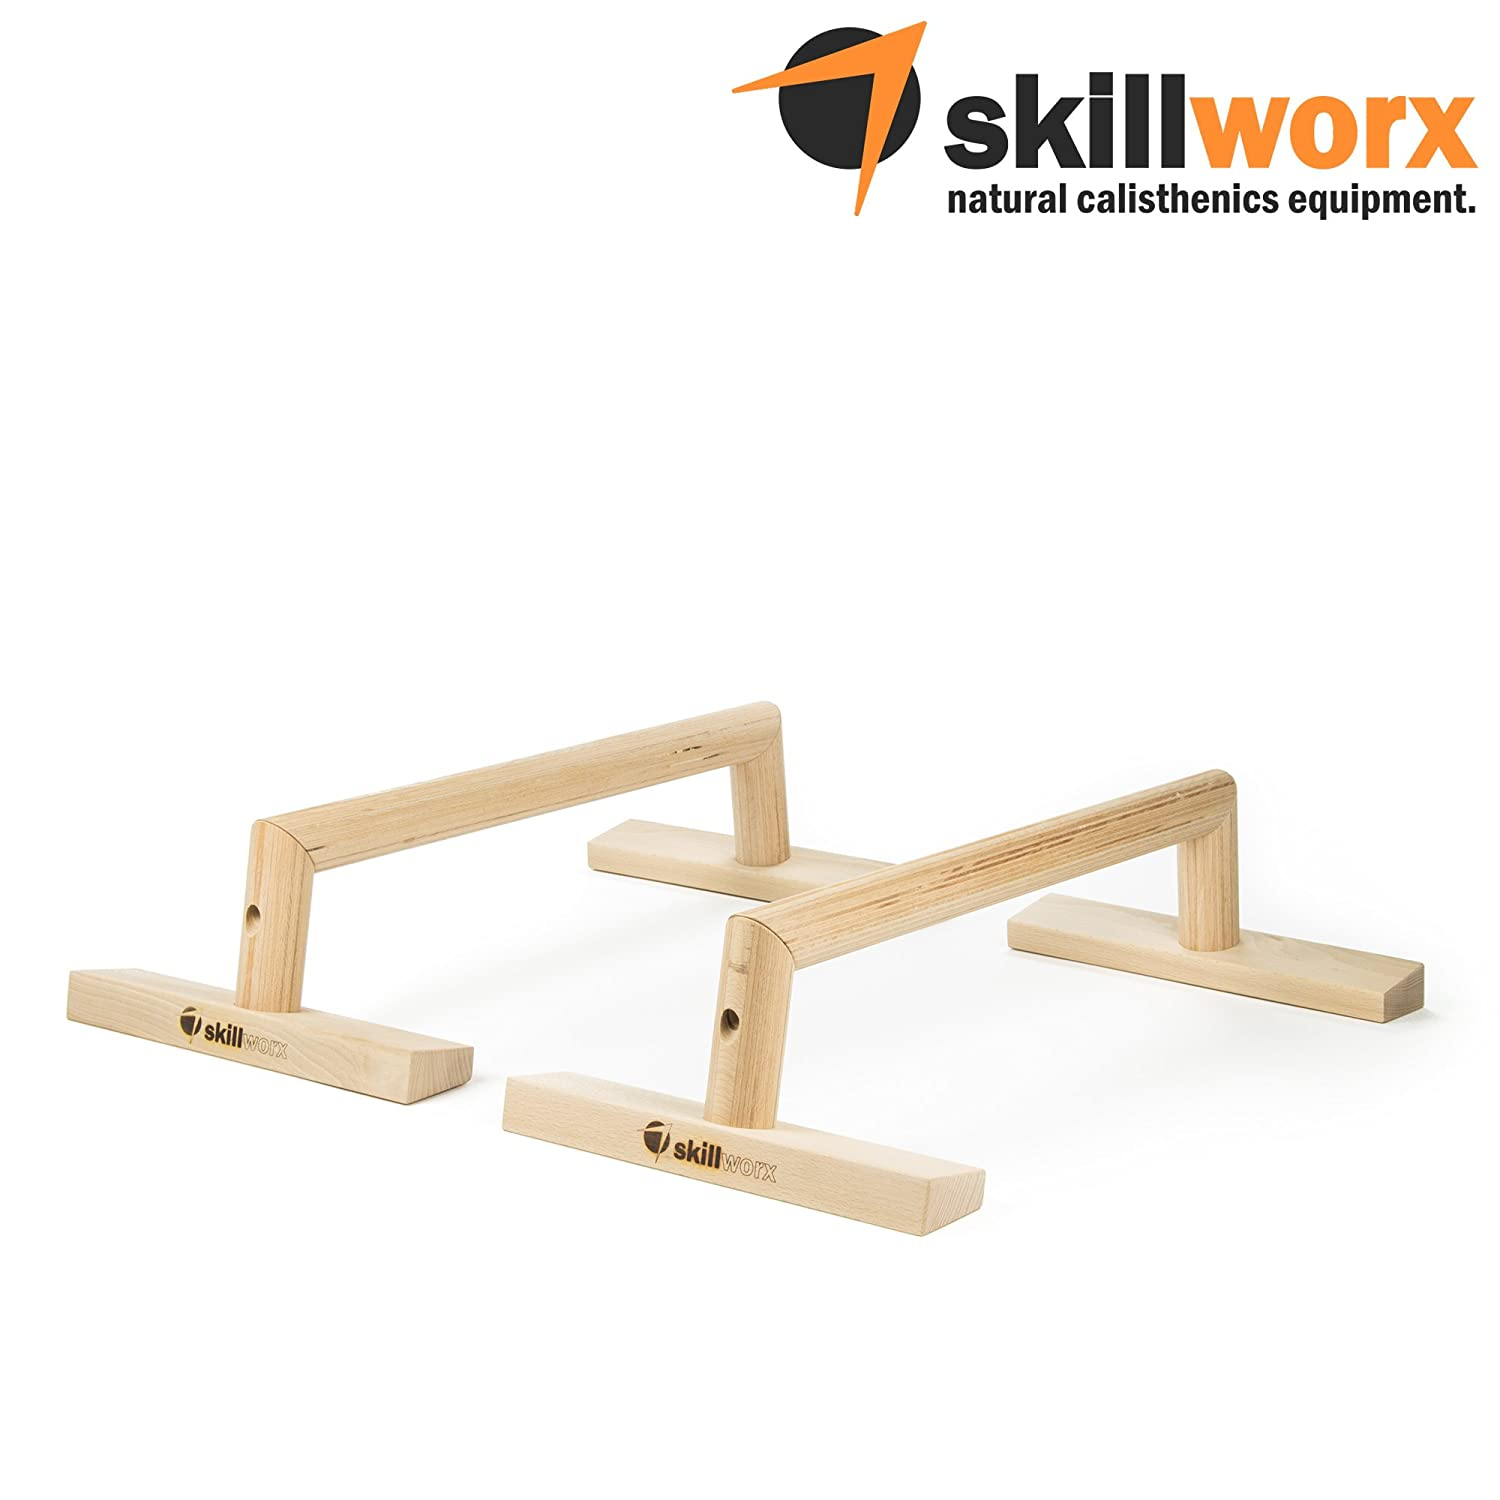 skillworx low parallettes bei amazon kaufen